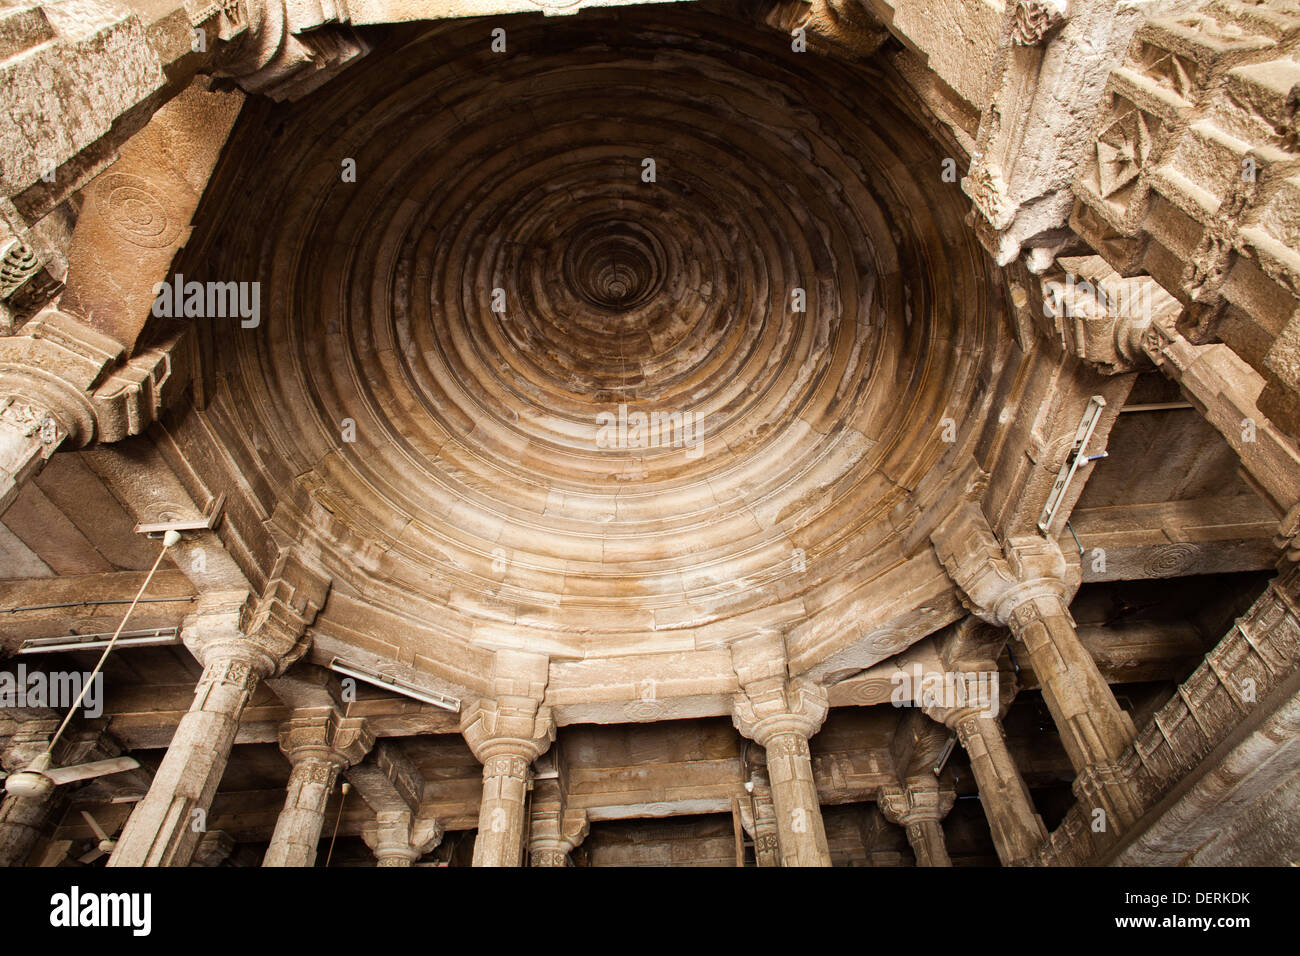 Low angle view of the ceiling of a mosque, Jhulta Minara, Ahmedabad, Gujarat, India Stock Photo